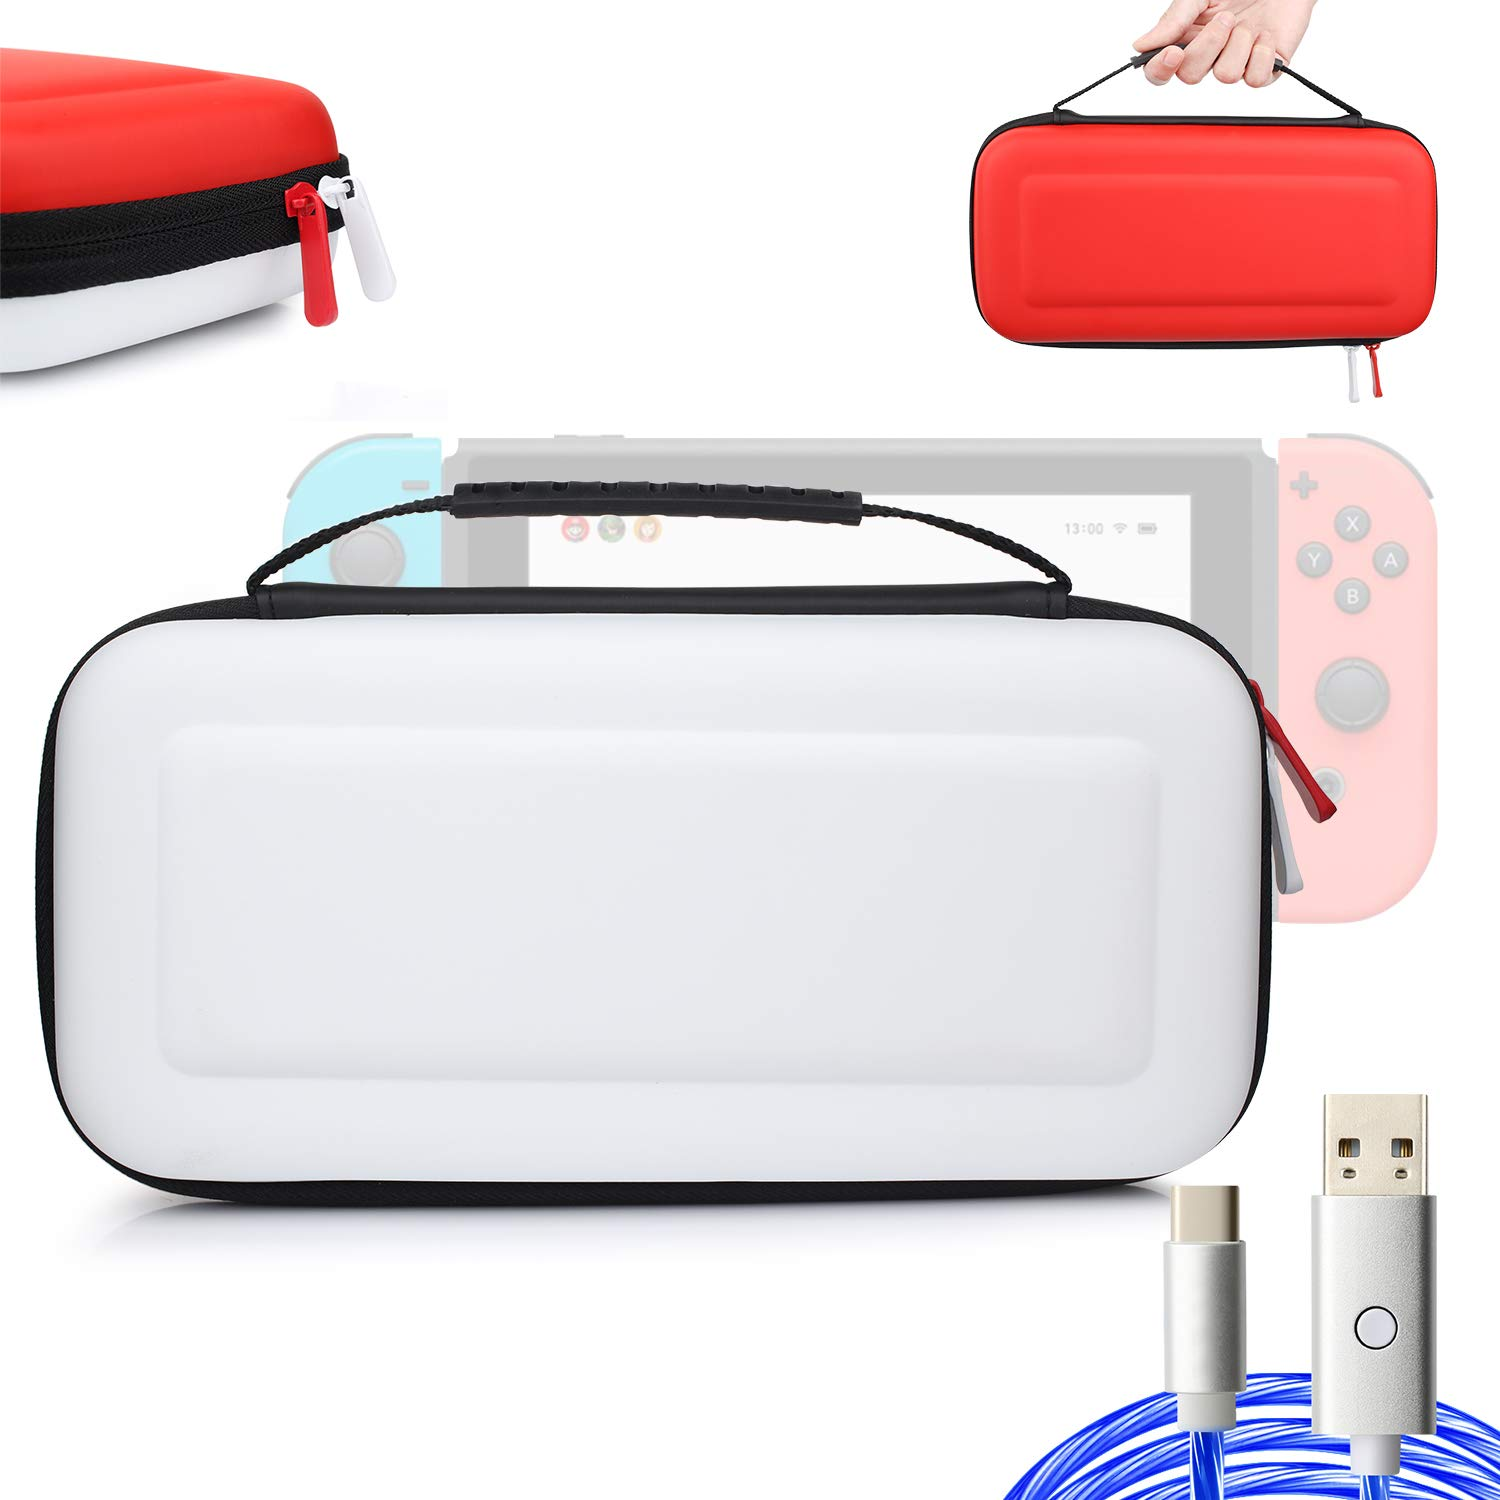 momen Nintendo Switch Case for Nintendo Switch Console & Accessories with 10 Games Cartridges; EVA Switch Case with 6.5 FT Led Cable - White & Red